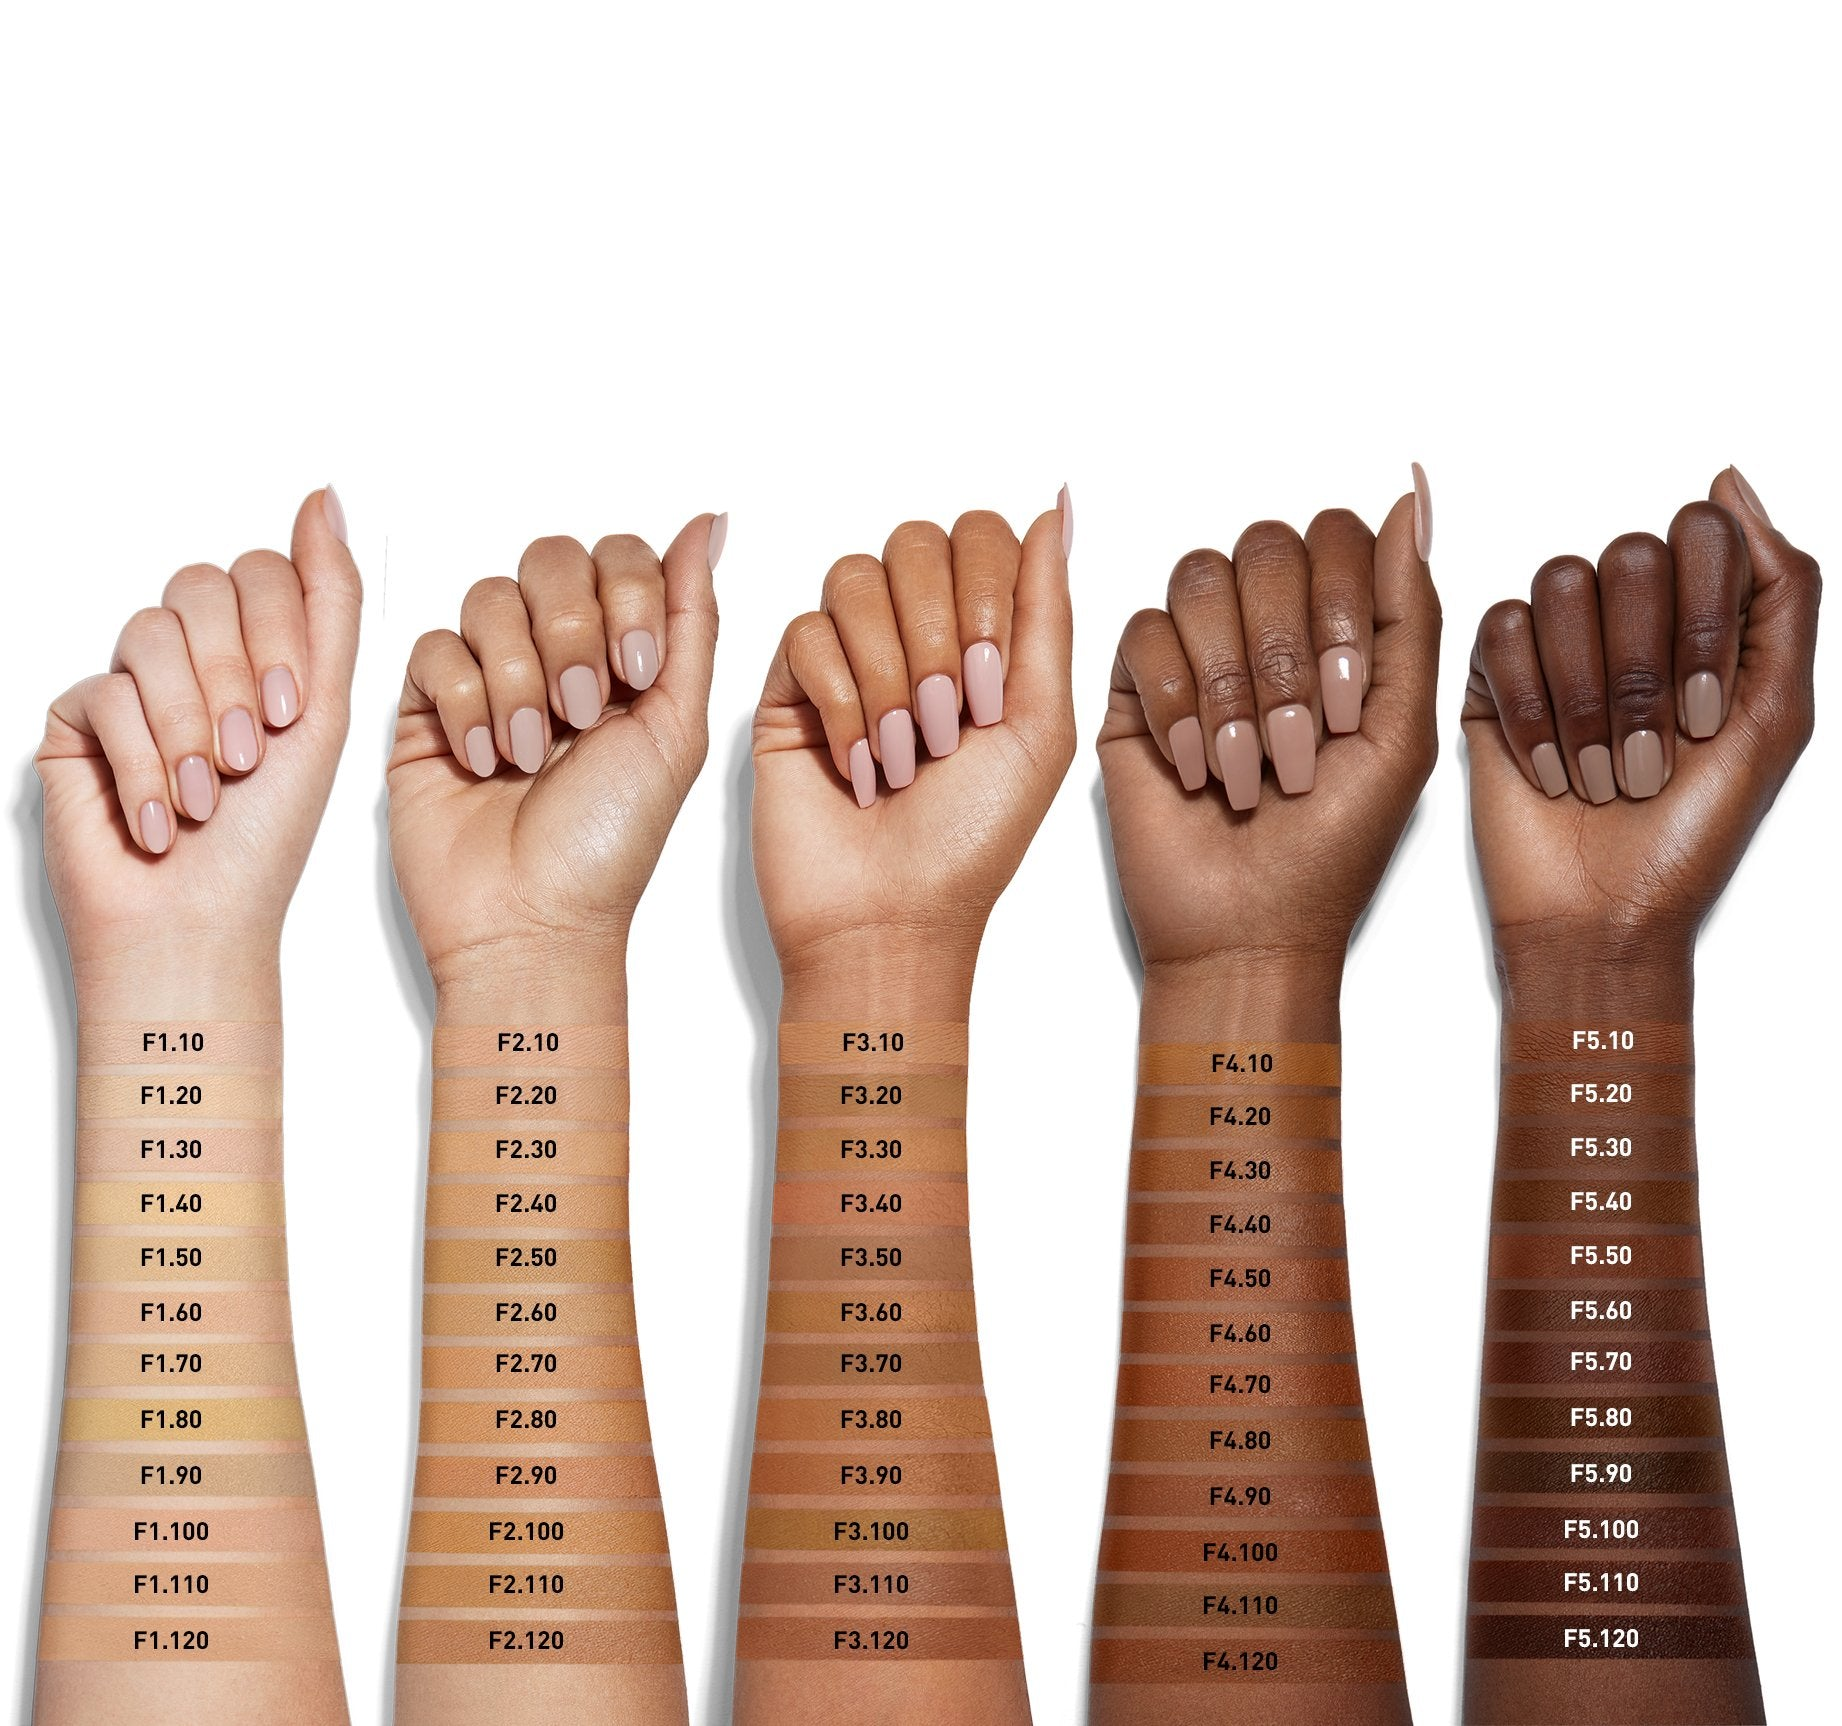 FLUIDITY FULL-COVERAGE FOUNDATION - F5.110 ARM SWATCHES, view larger image